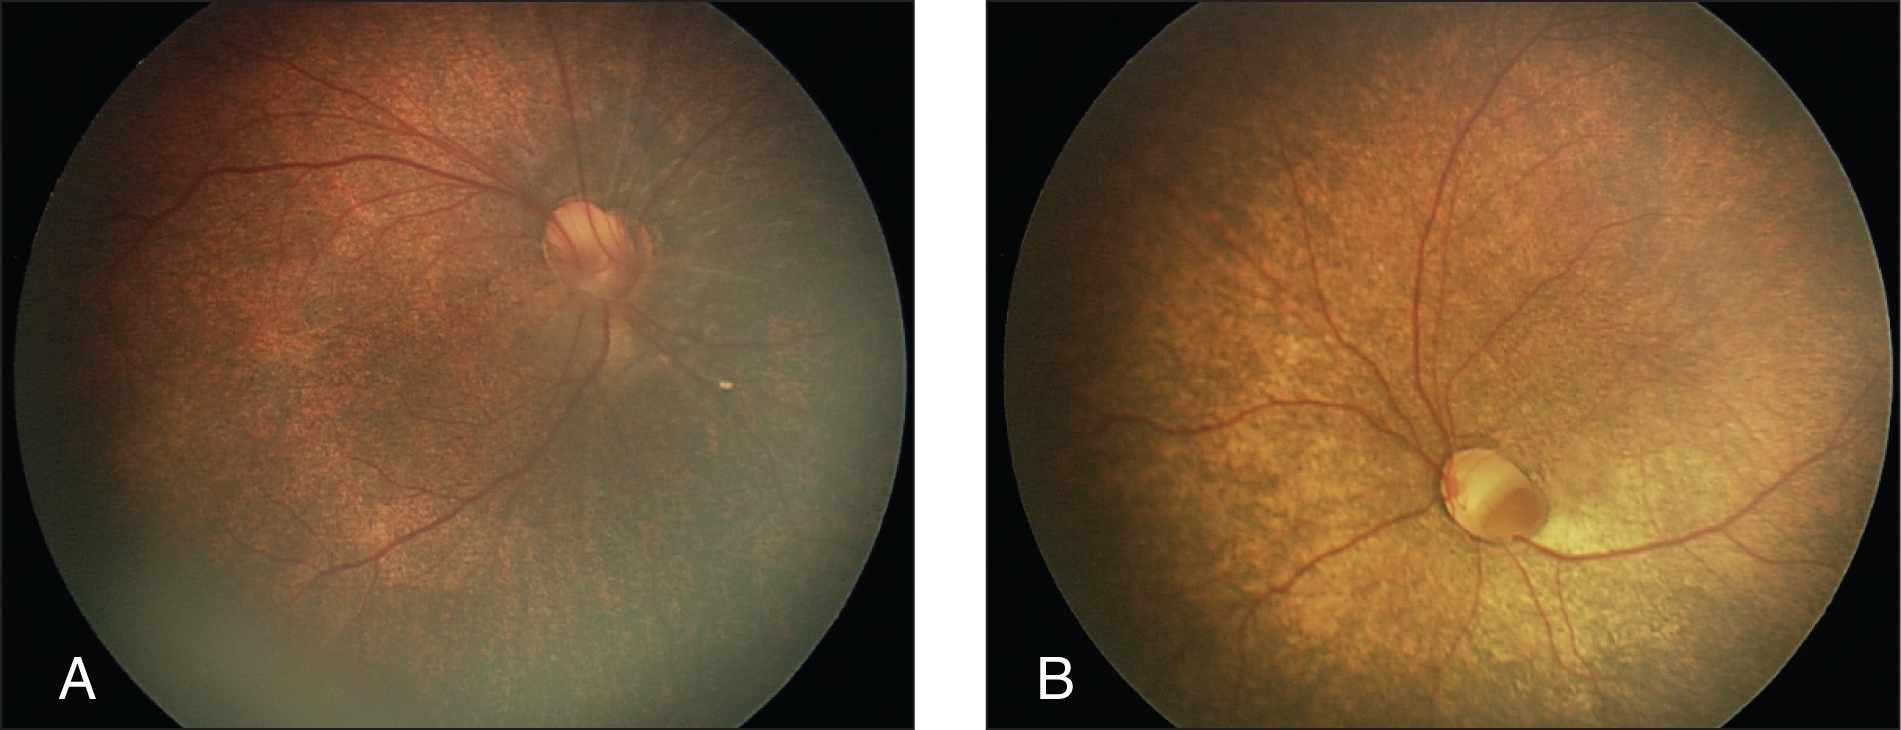 Retcam (Clarity Medical Systems, Inc., Pleasonton, CA) posterior segment photographs of the (A) right and (B) left eye with deep optic nerve colobomas, diffuse retinal dysplasia, and a lack of foveal contours. There is a small serous detachment around the right optic nerve.